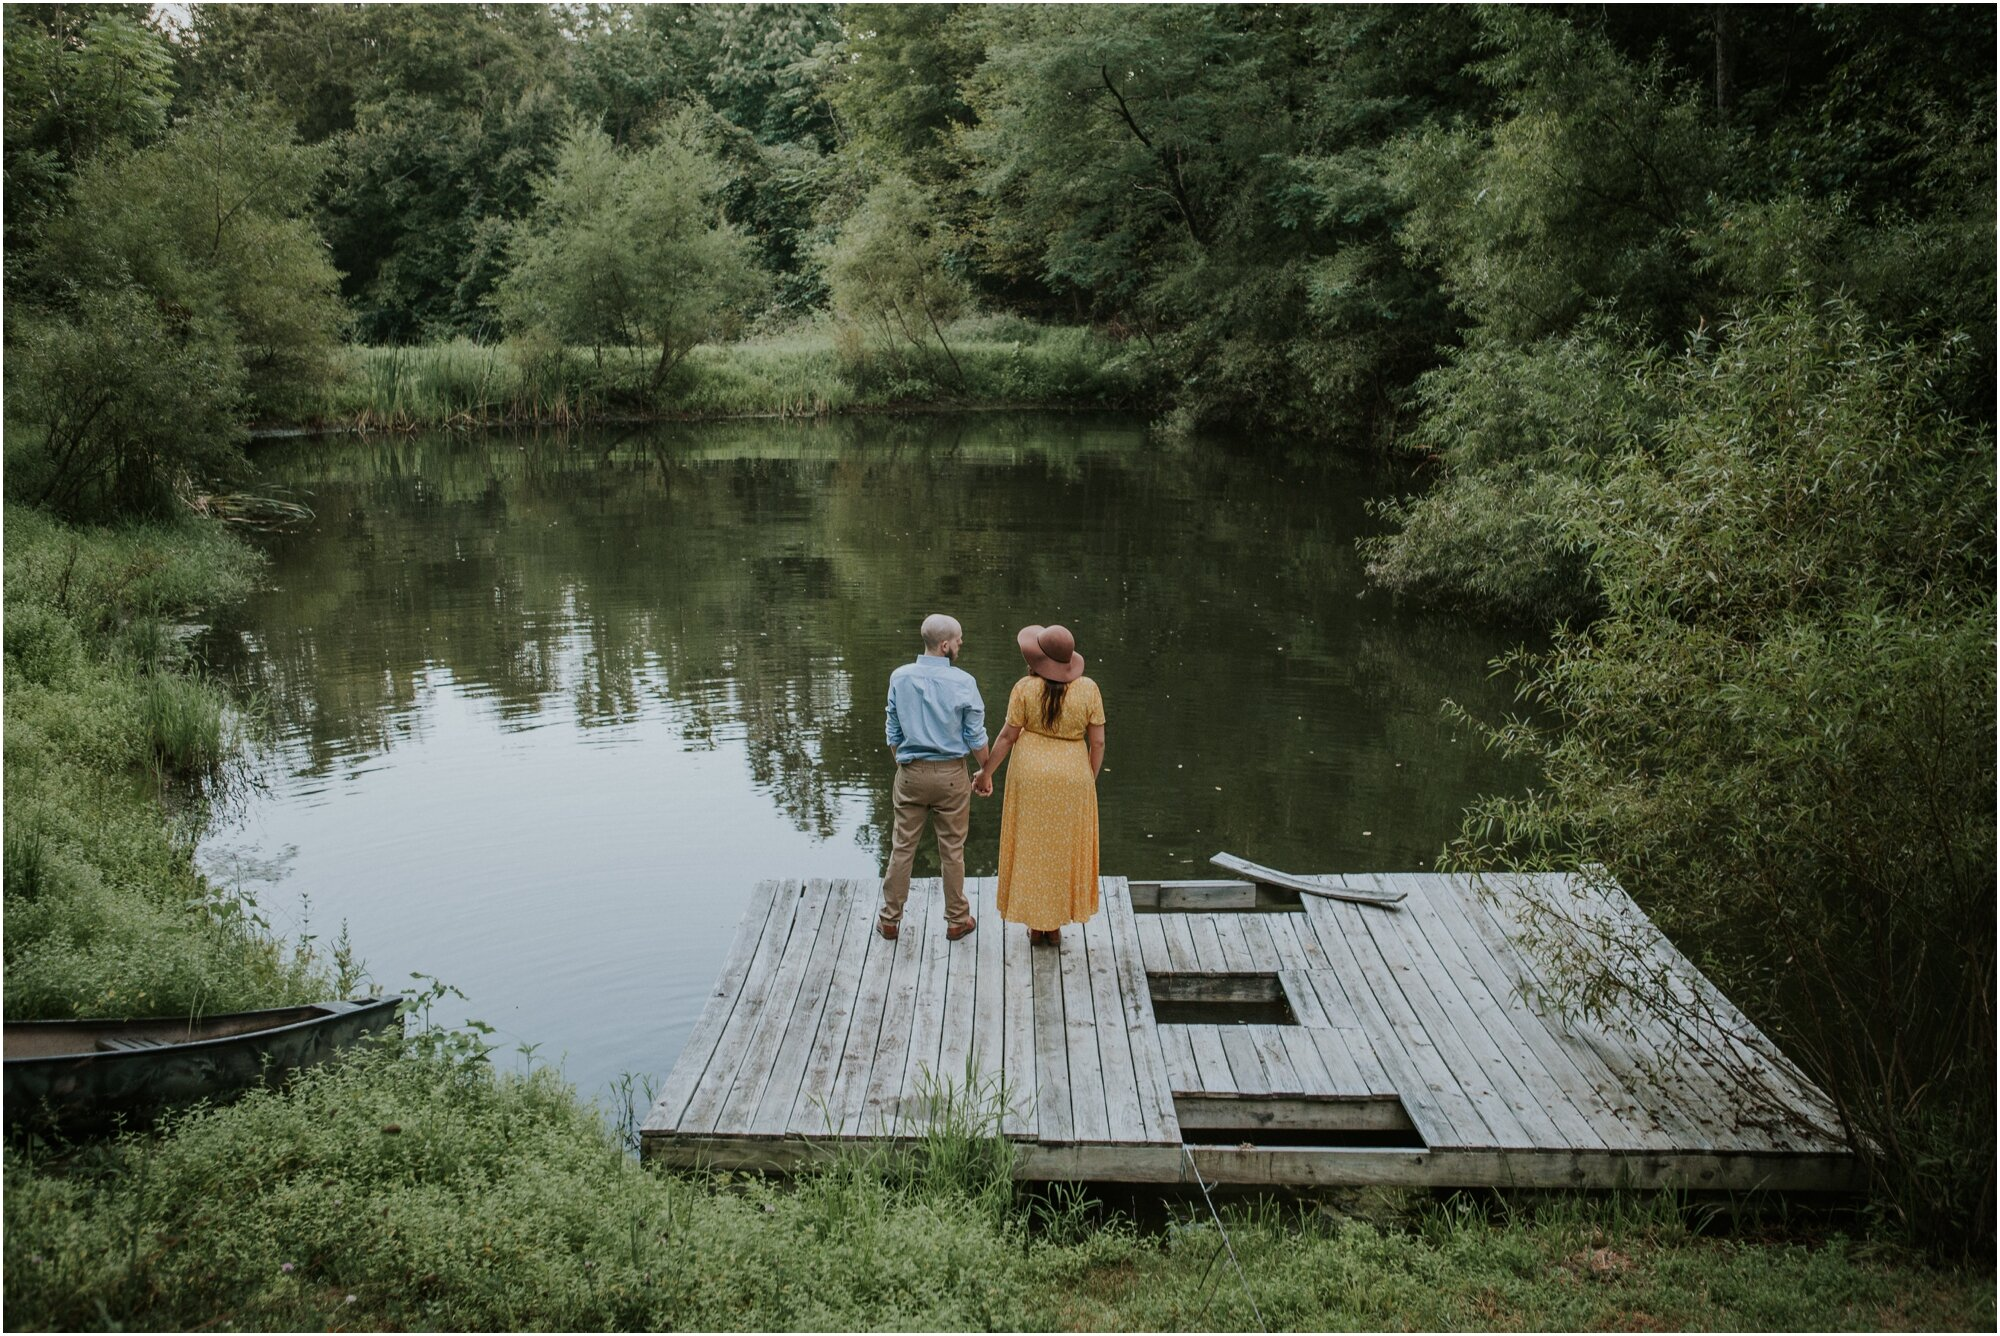 kingsport-tennessee-backyard-pond-bays-mountain-summer-engagement-session_0029.jpg